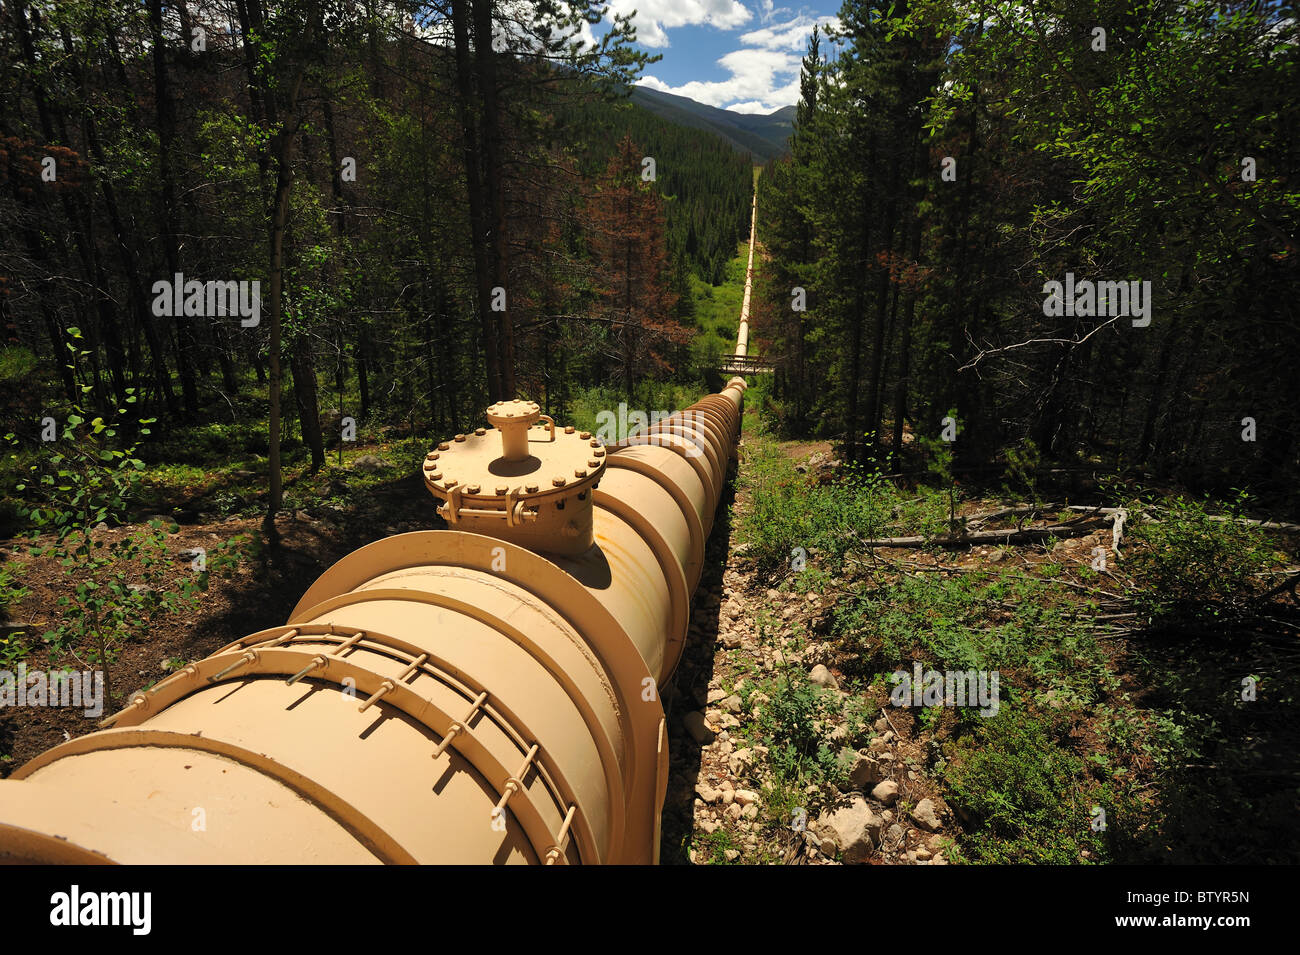 Water diversion pipeline, Fraser, Colorado - Stock Image